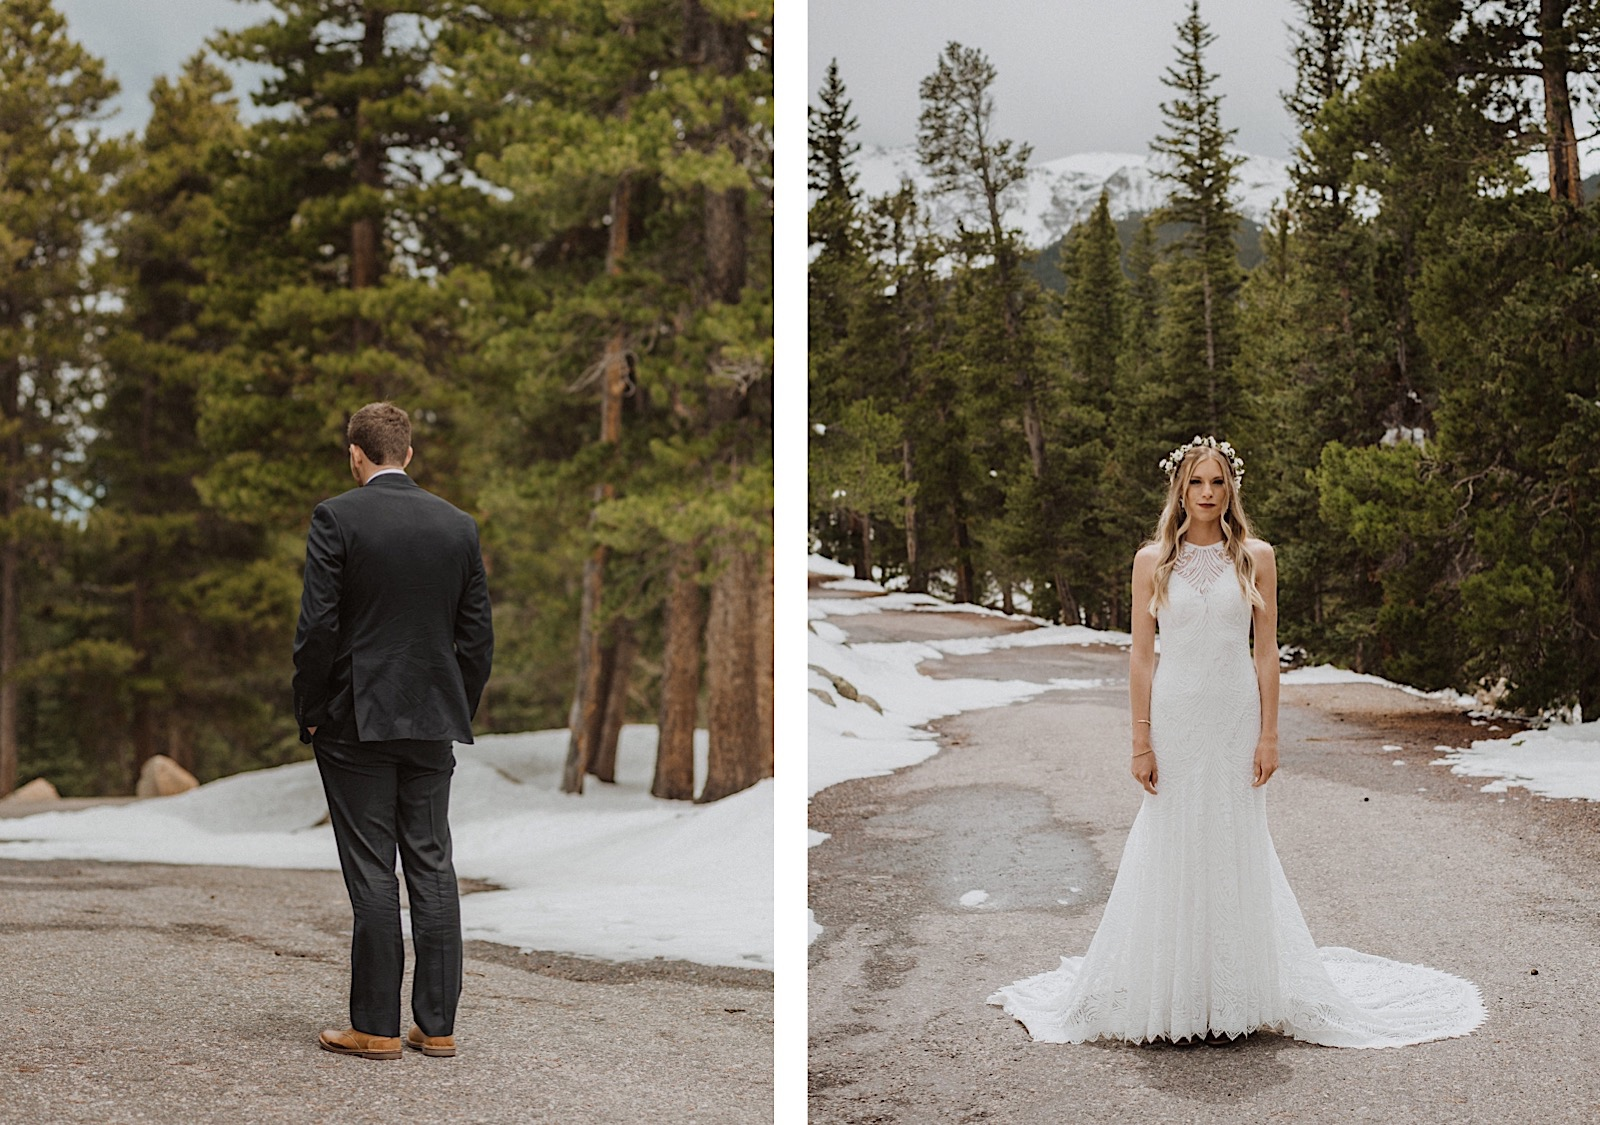 Blackstone Rivers Ranch Wedding, Colorado Wedding Photographer, Colorado Elopement Photographer, Colorado Mountain Wedding, Colorado Wedding Ideas, Colorado Wedding Inspiration, Destination Wedding in Colorado, Places to Elope in Colorado, Places to get married in Colorado, Boho Wedding Inspiration, Wedding Photography, Wedding ideas, Wedding Inspiration, Echo Lake, Echo Lake First Look